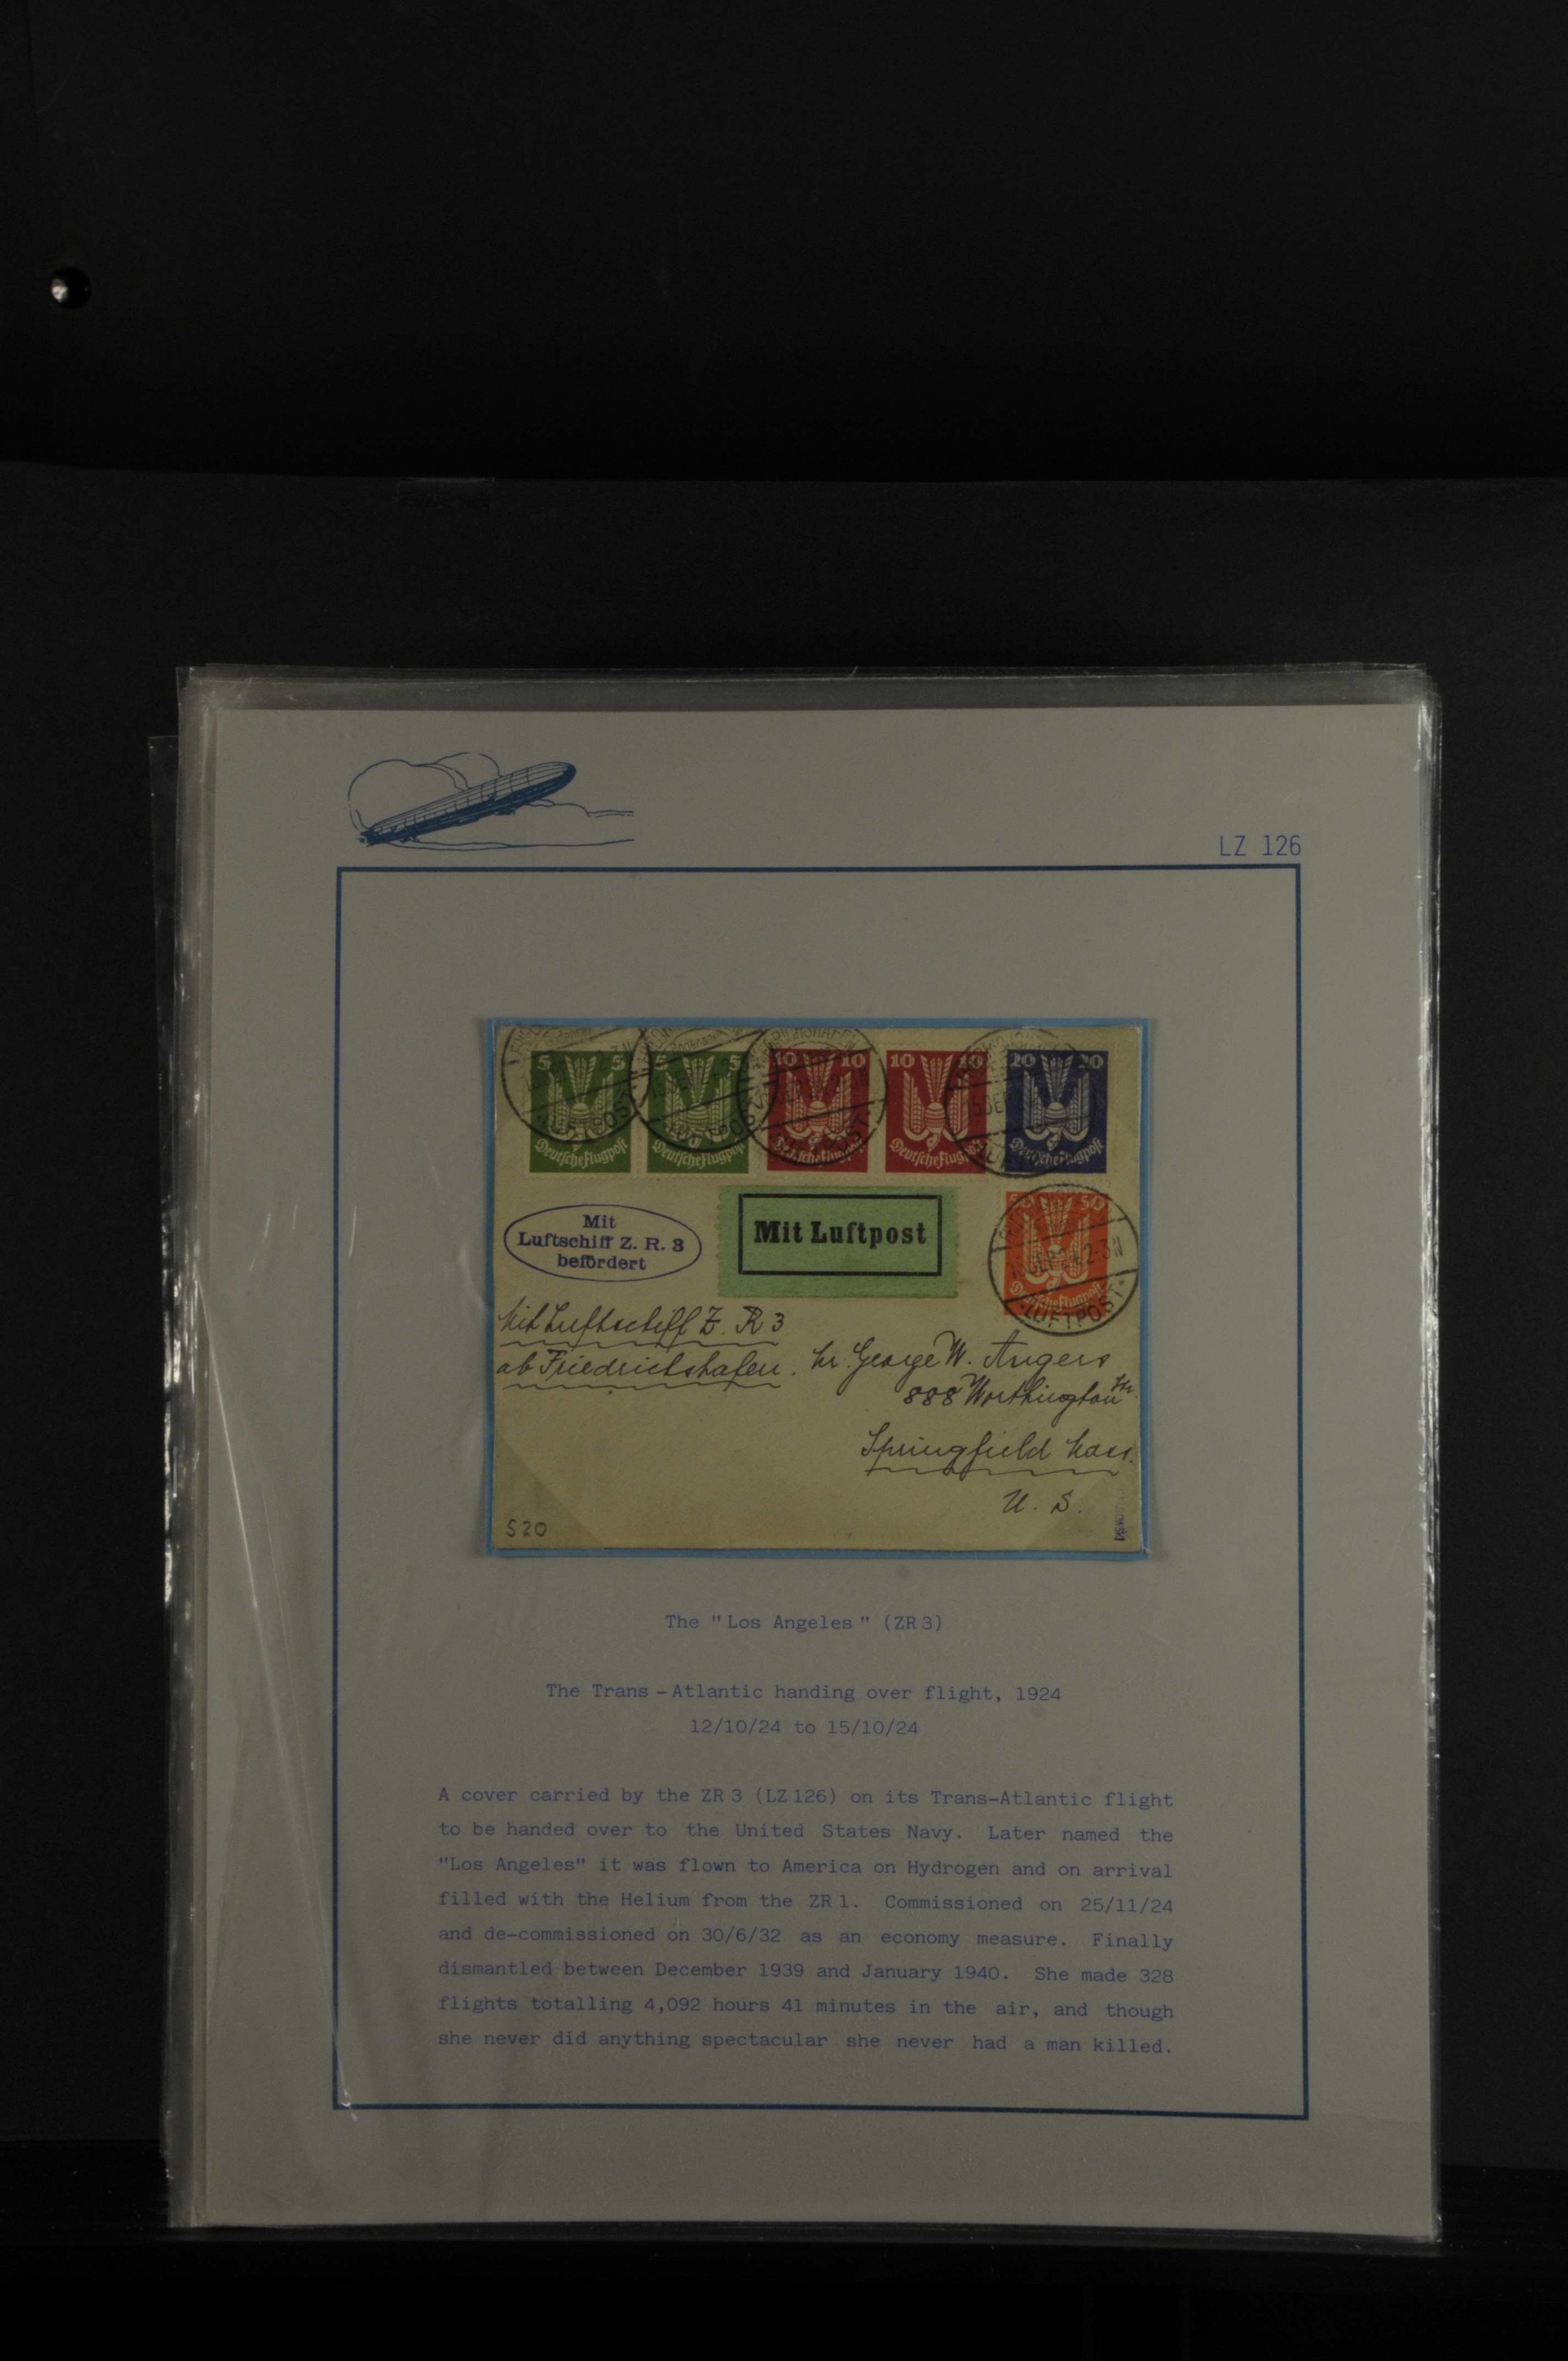 Lot 7646 - Flug- und Zeppelinpost zeppelinpost -  Auktionshaus Ulrich Felzmann GmbH & Co. KG Auction #161 Philatelic & Numismatic